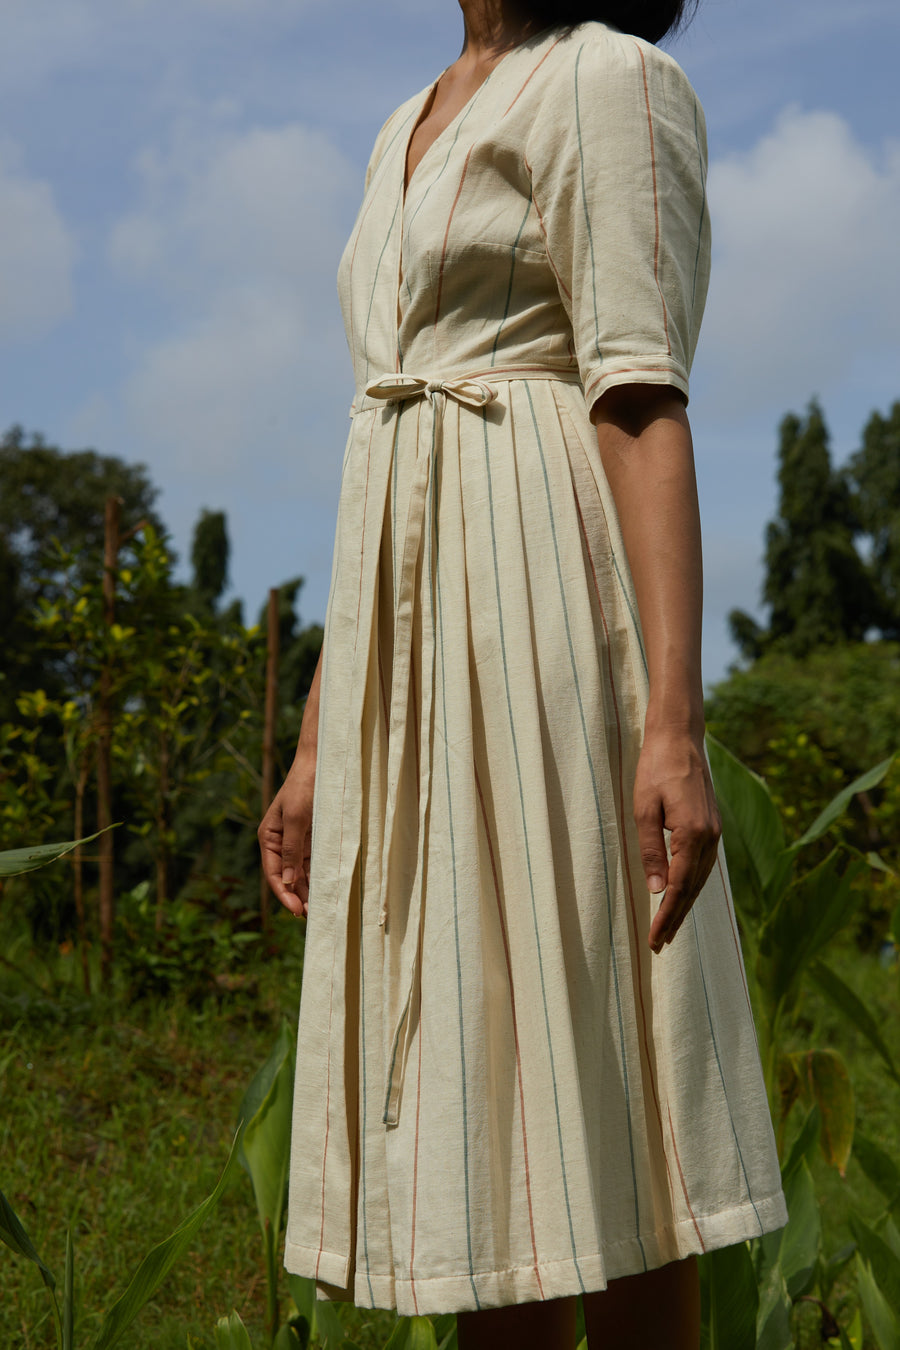 Yarrow Dress - Ethical made fashion - onlyethikal